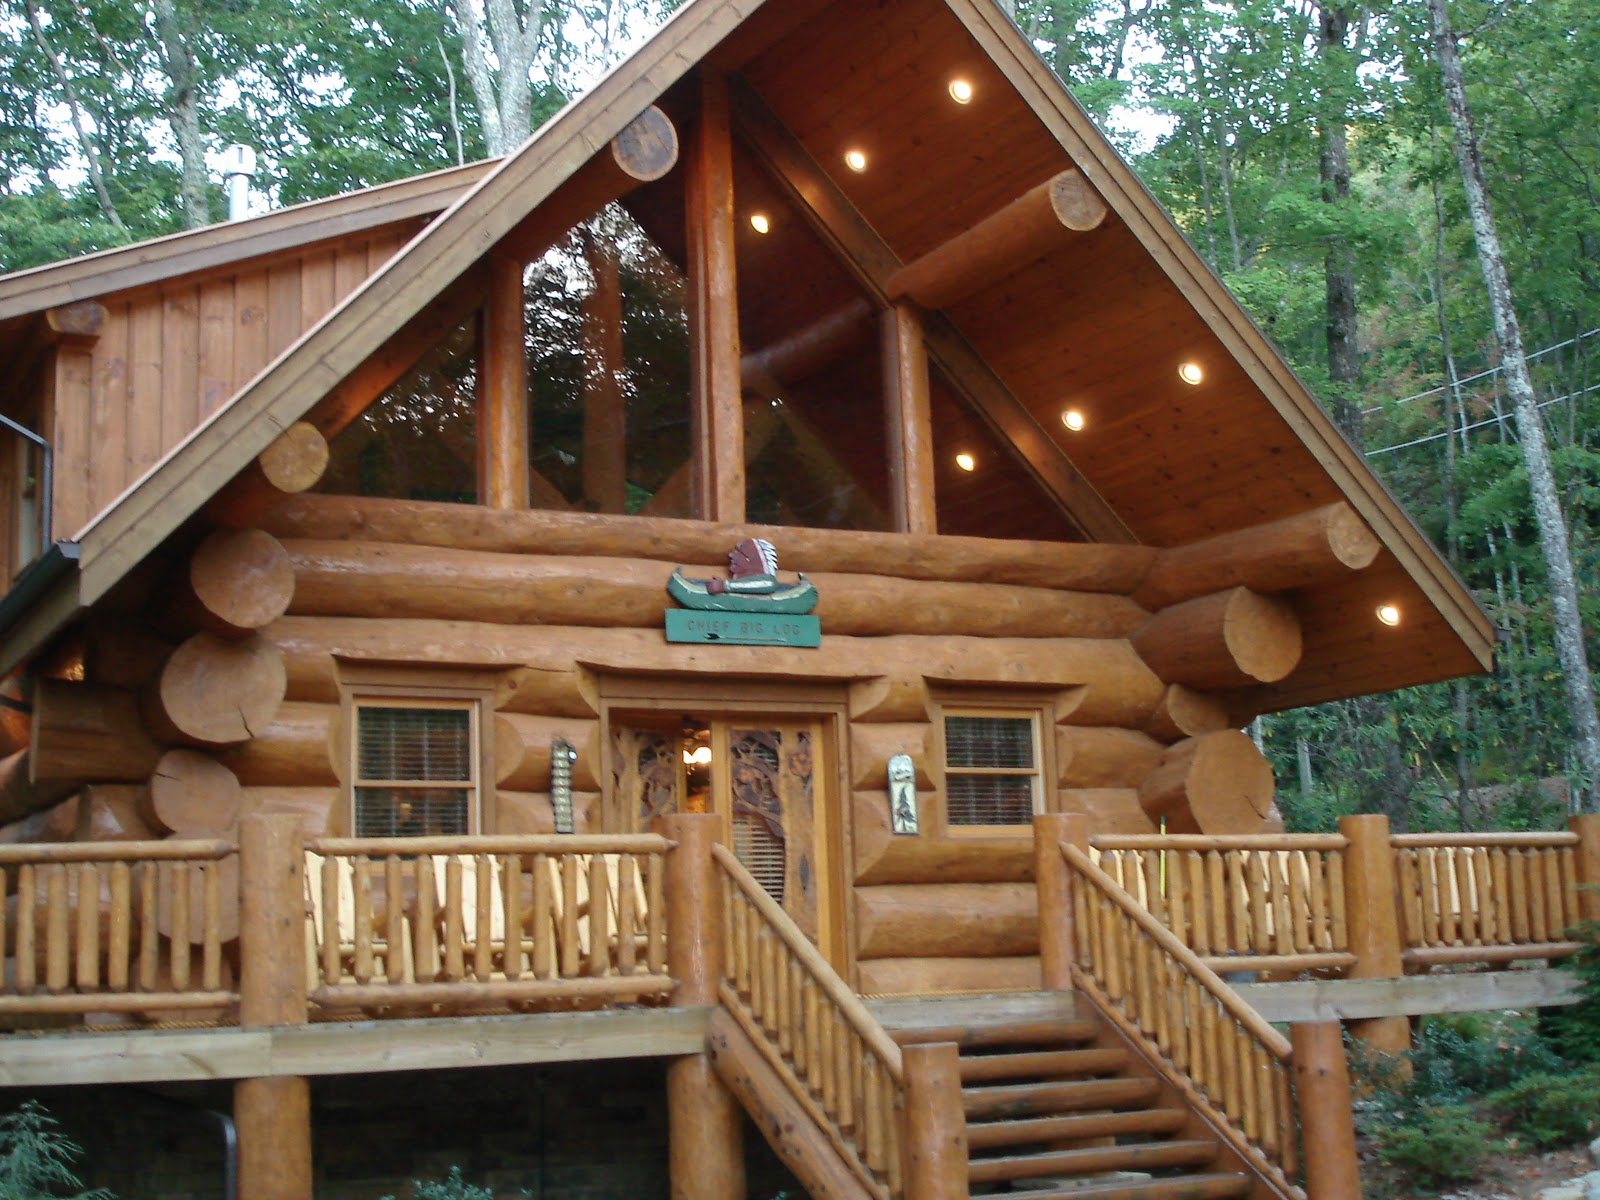 Top 10 reasons to plan a smoky mountain vacation over Best mountain view cabins in gatlinburg tn